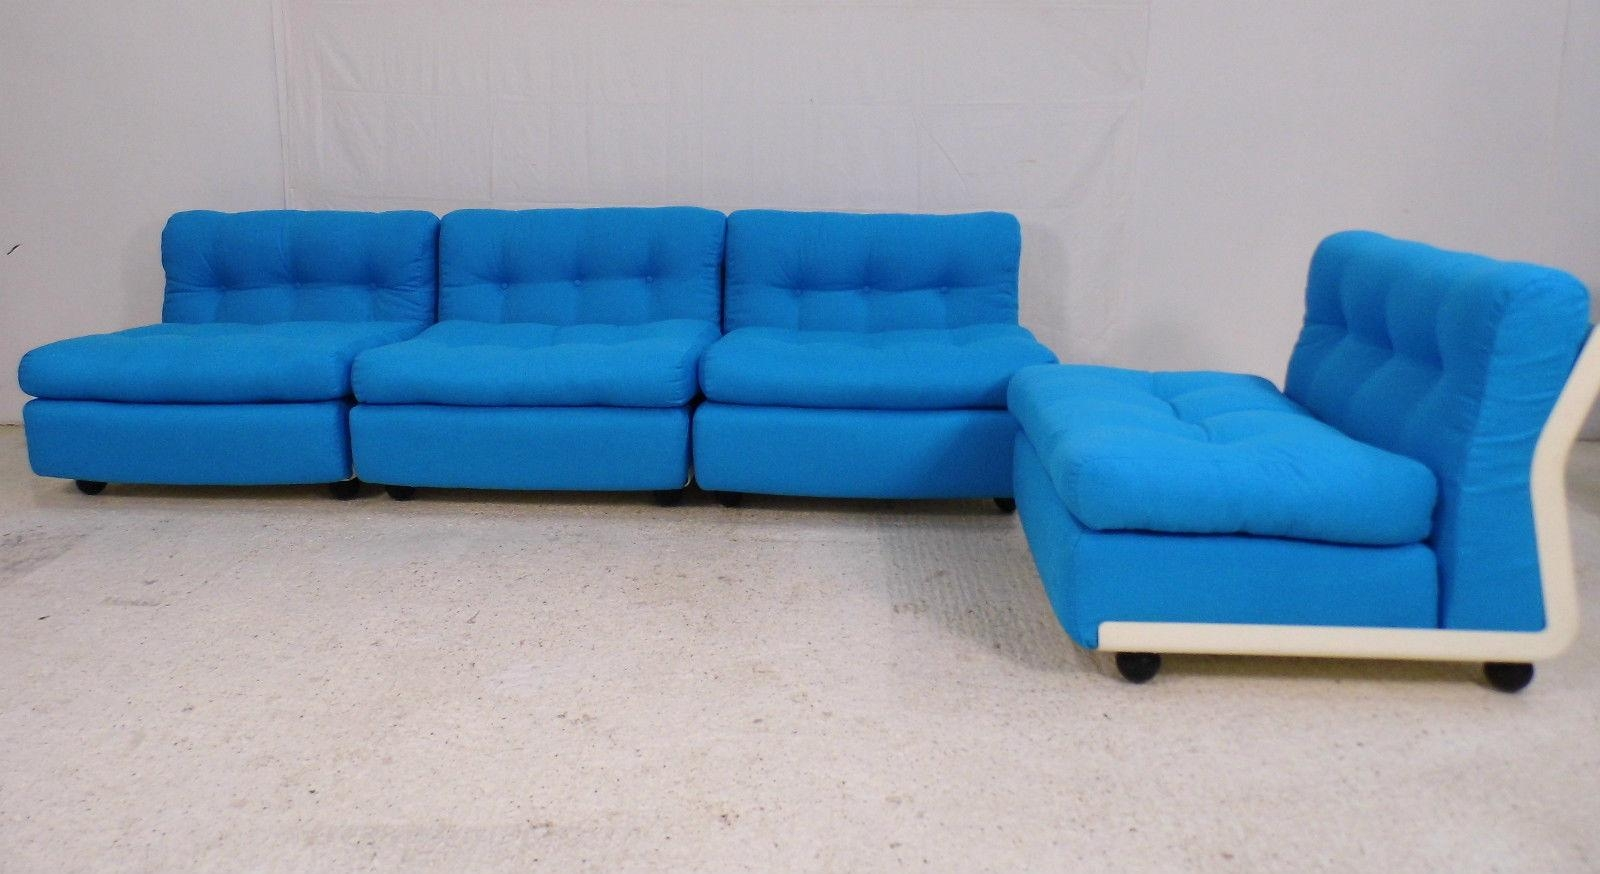 Modular Amanta 4 Seater Sofamario Bellini For C&b Italia, 1973 Throughout Bellini Sofas (View 13 of 20)